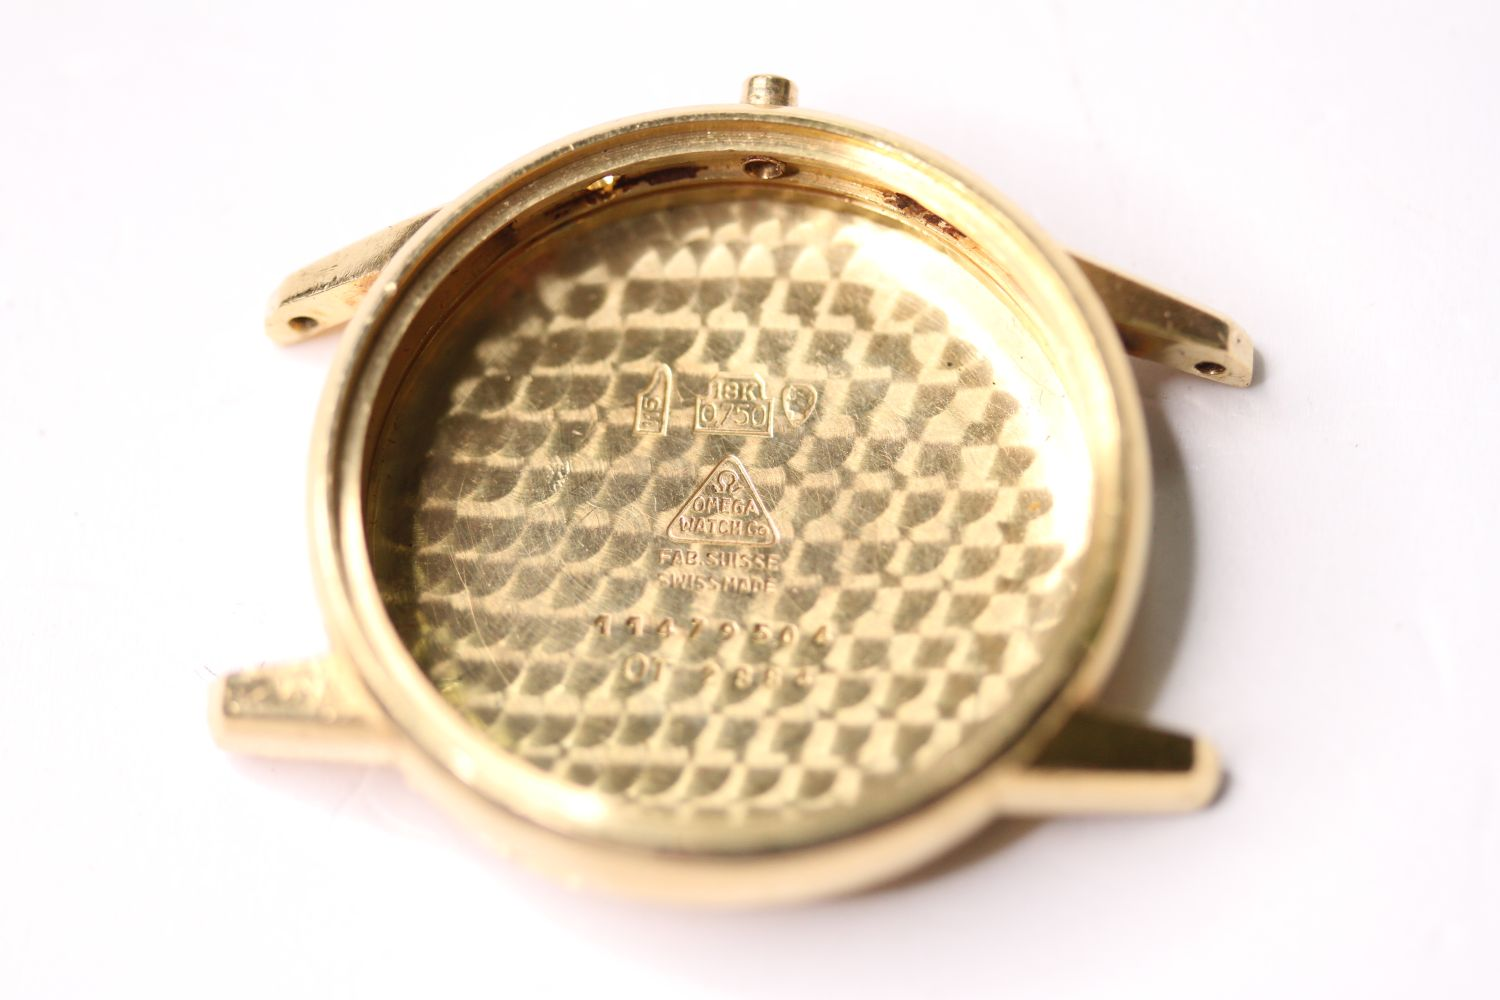 18CT OMEGA CASE, 35mm 18ct gold case, reads omega watch co, fab suisse, swiss made, 11479504, OT - Image 2 of 3